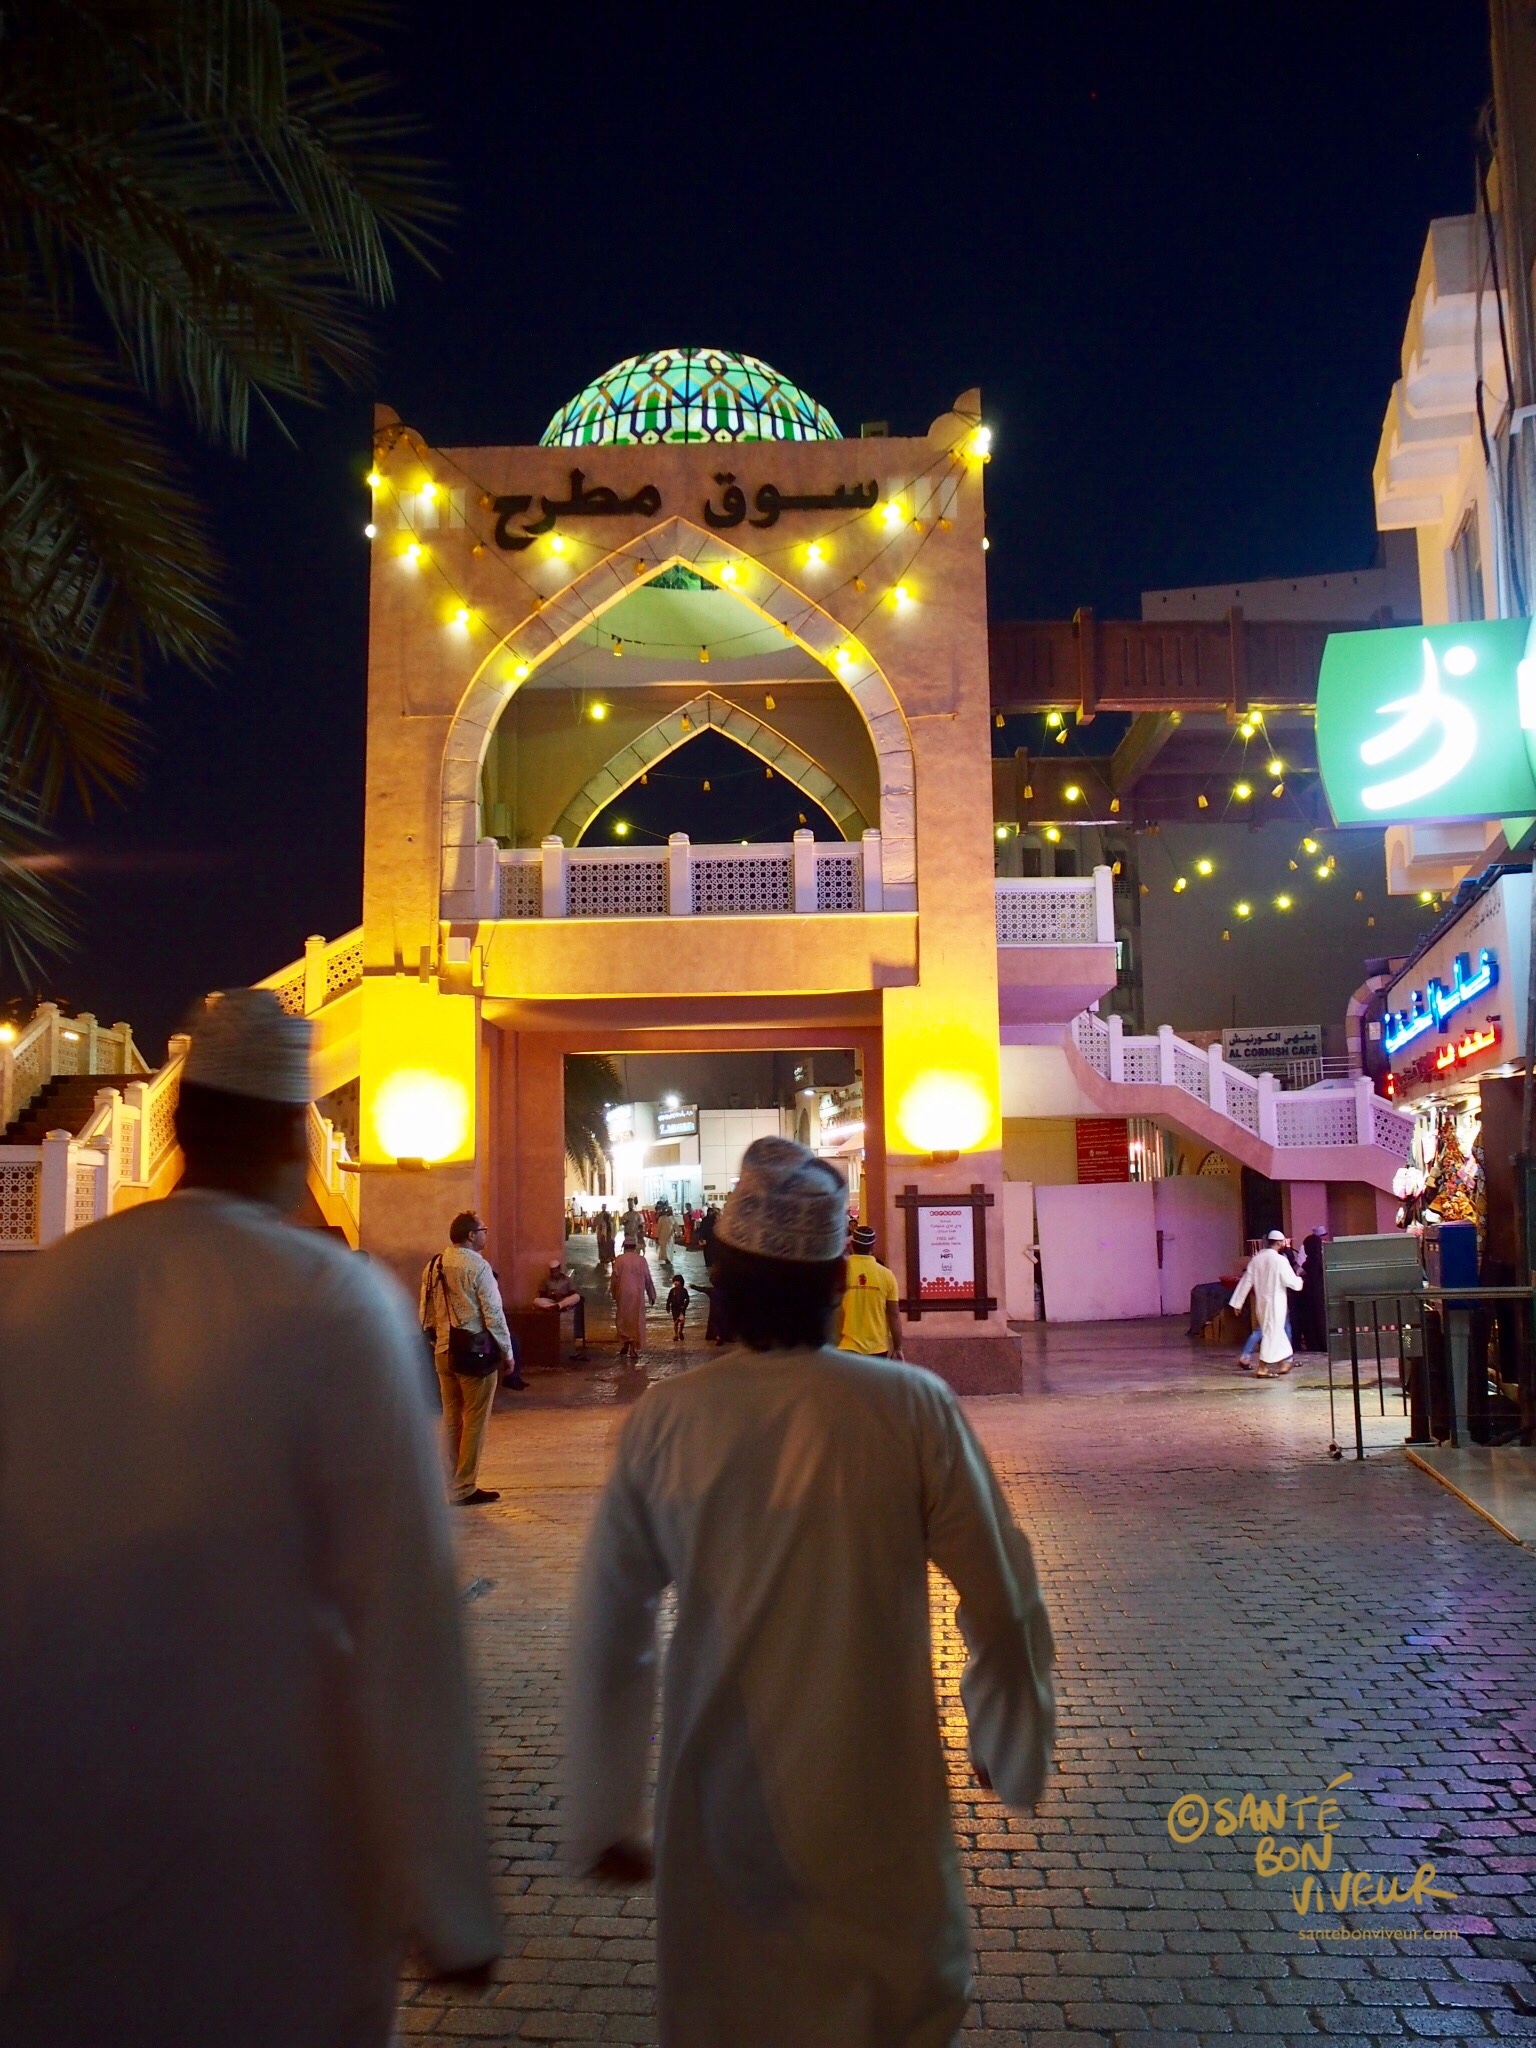 Men in everyday Omani dress approach Mutrah Souq, Muscat from the Corniche